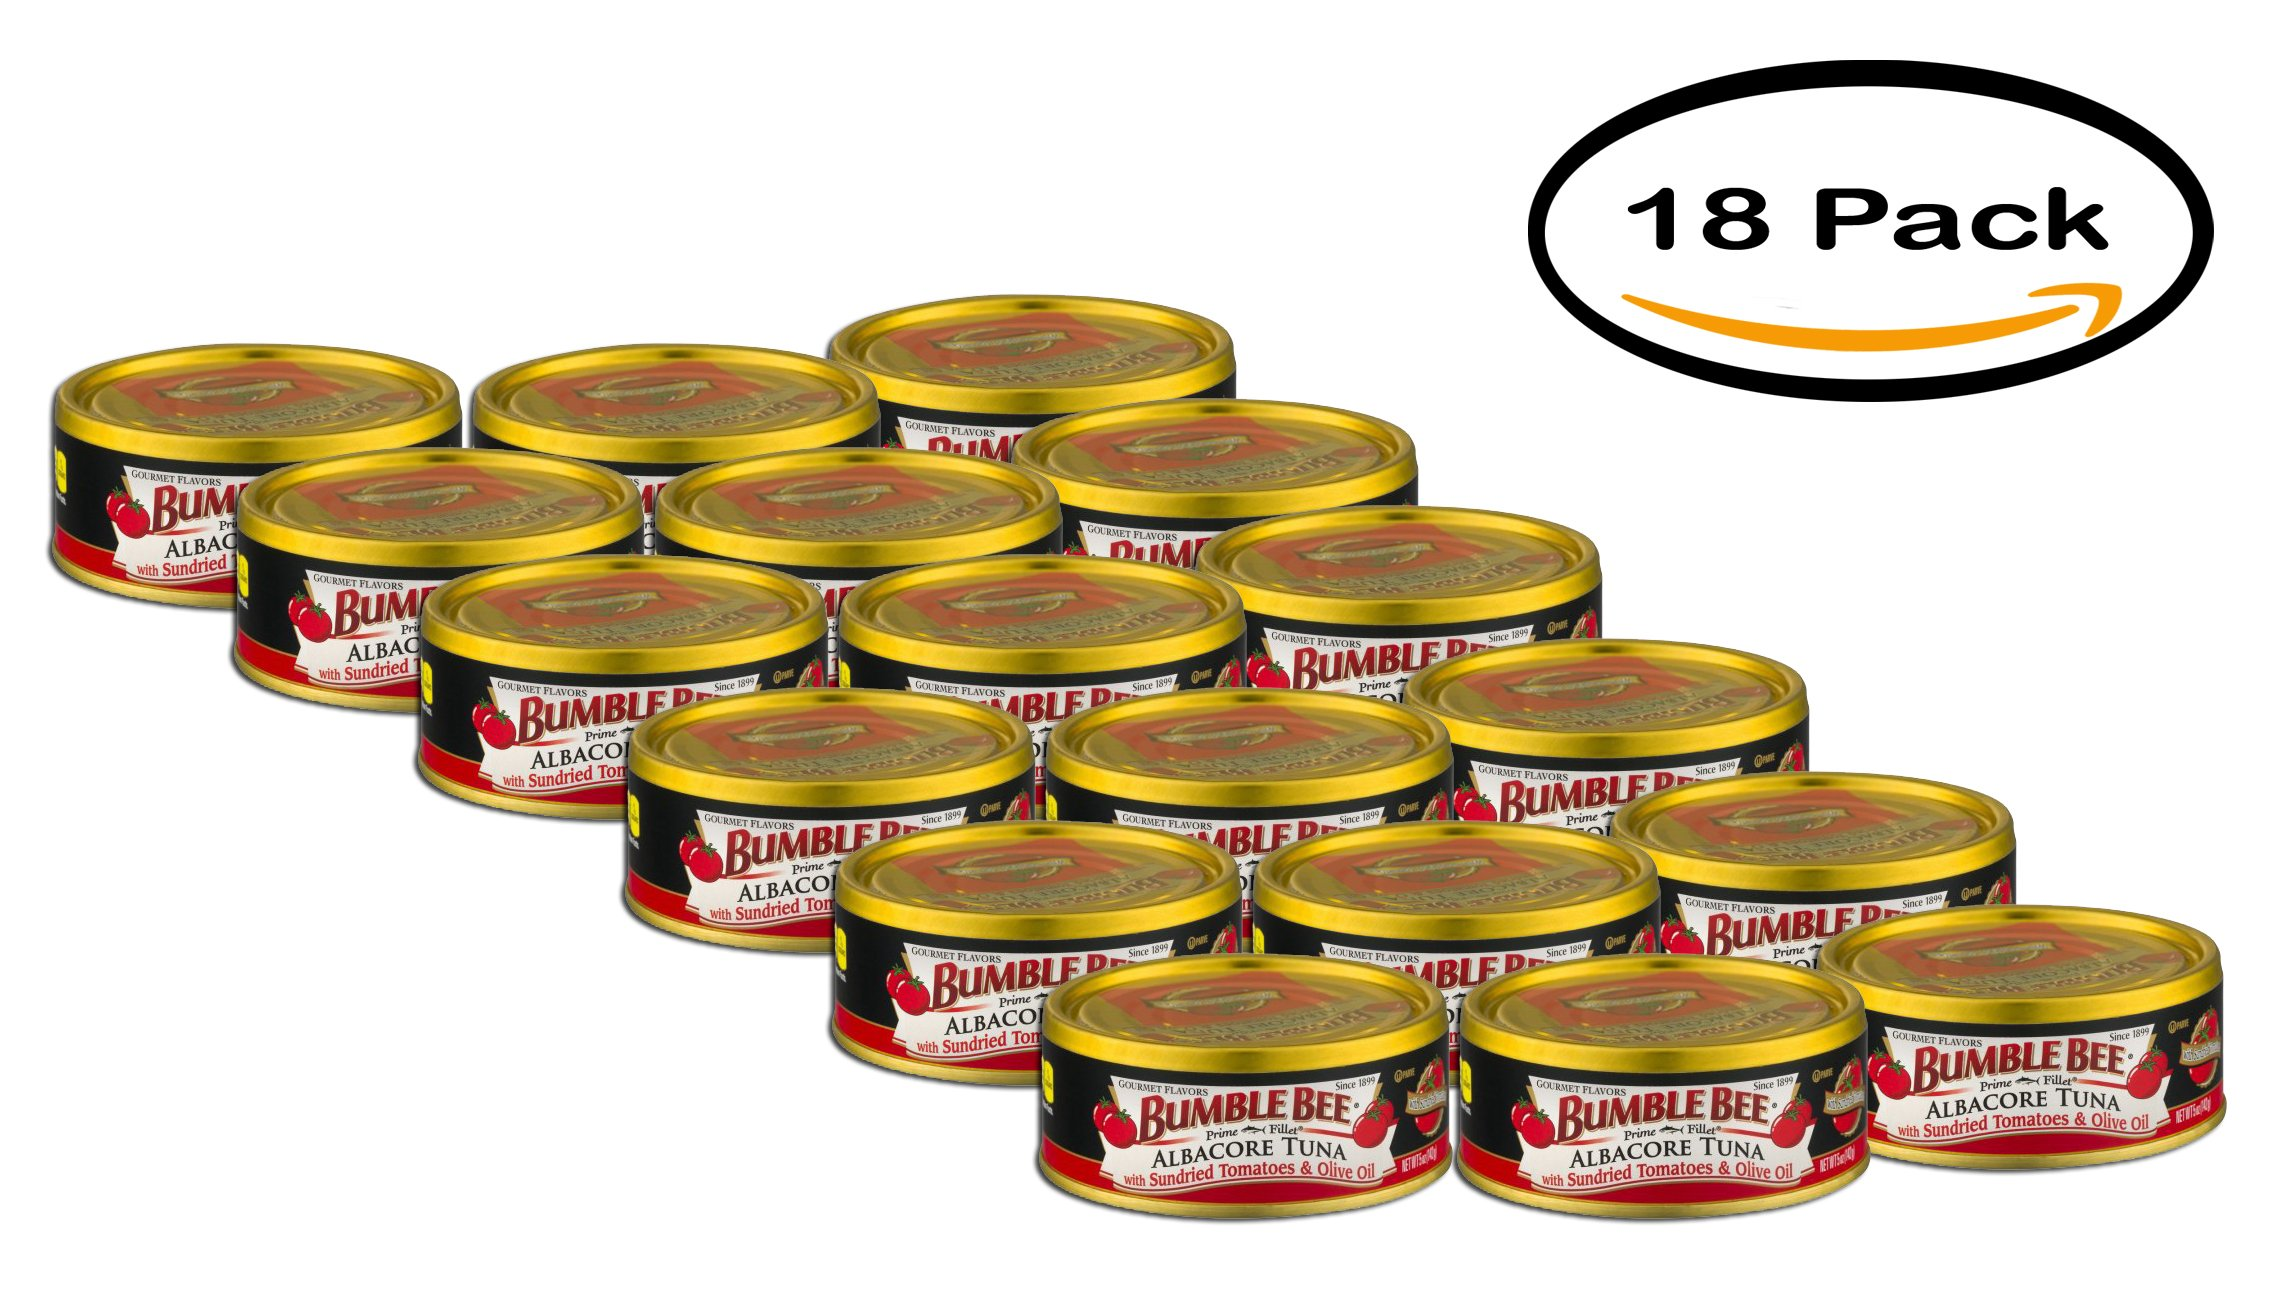 PACK OF 18 - Bumble Bee Albacore Tuna with Sundried Tomatoes & Olive Oil, 5.0 OZ by Bumble Bee